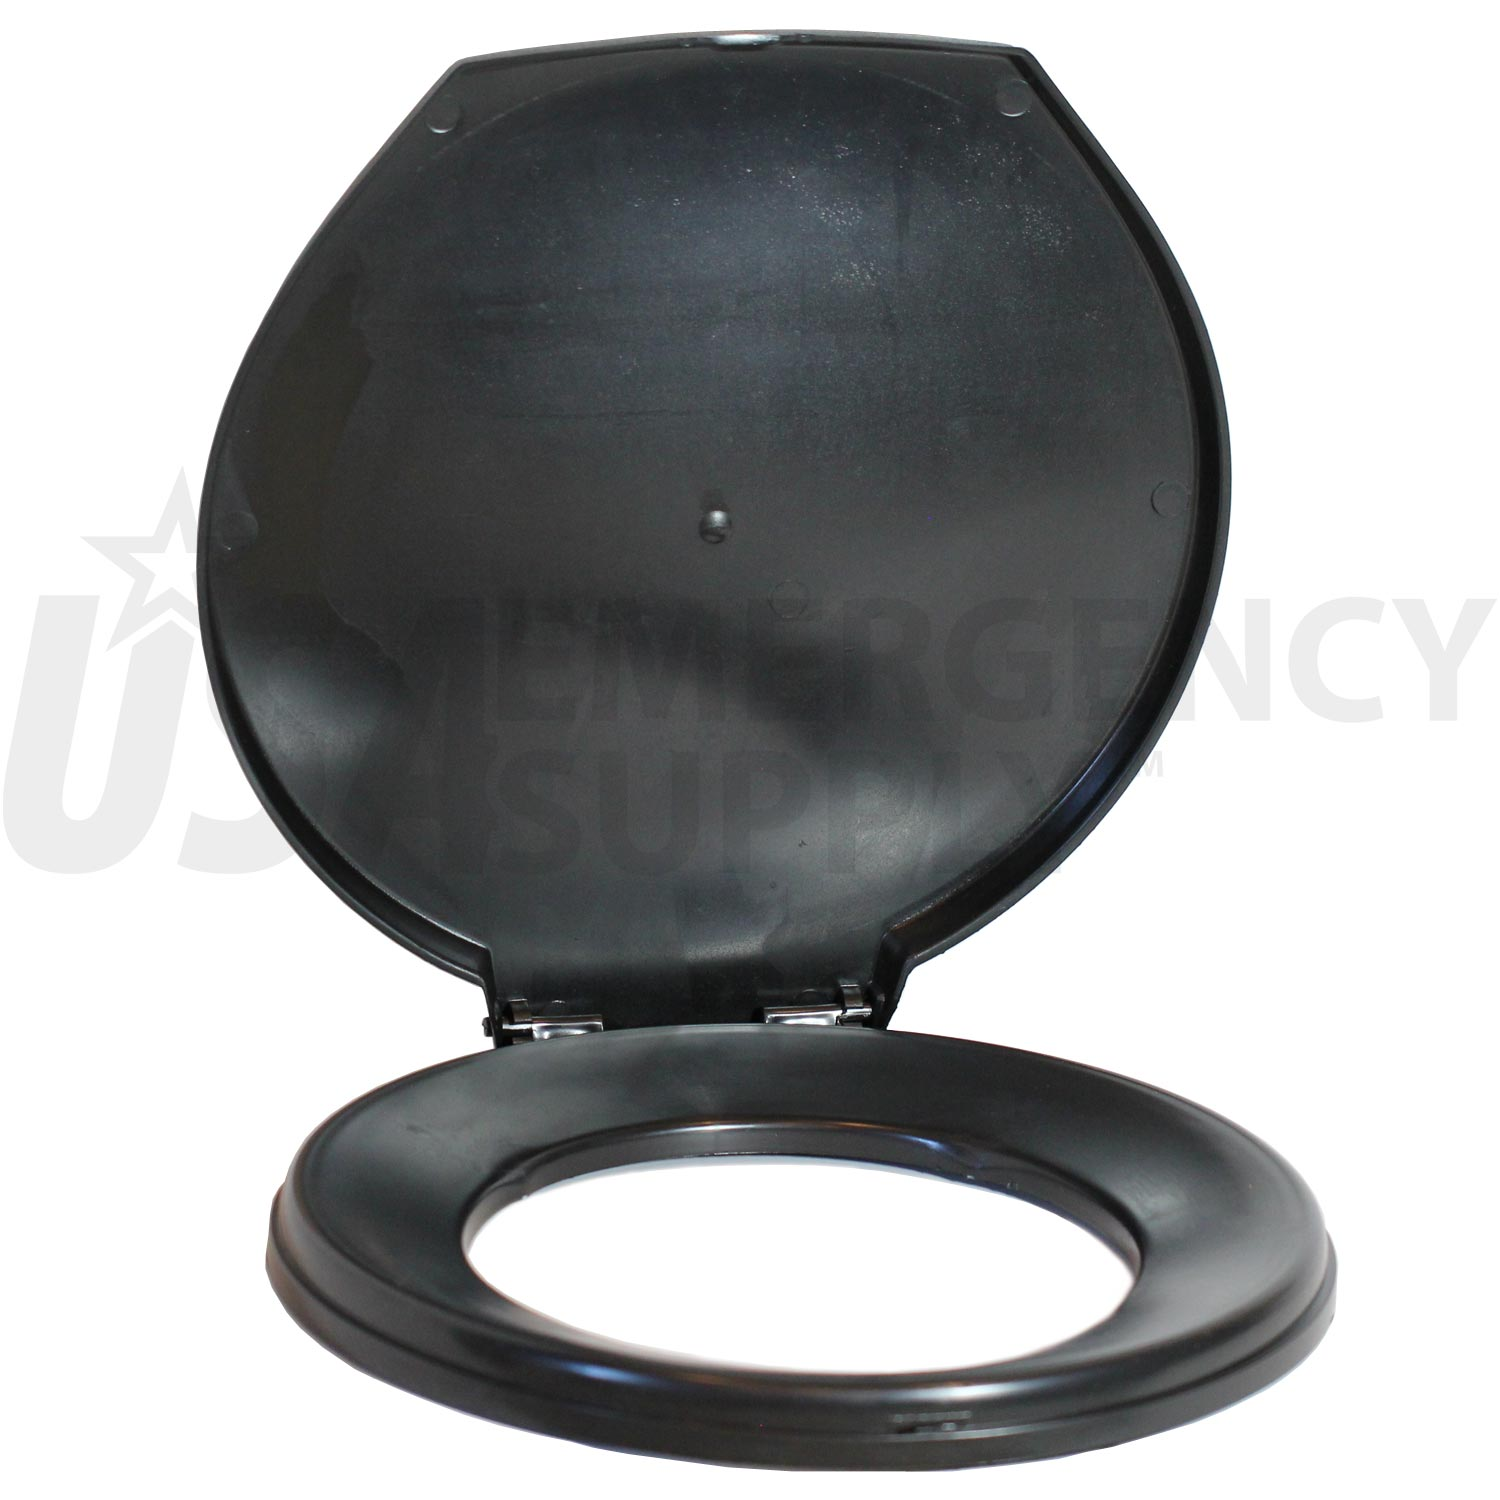 Toilet Seat For 5 Gallon Bucket Usa Emergency Supply